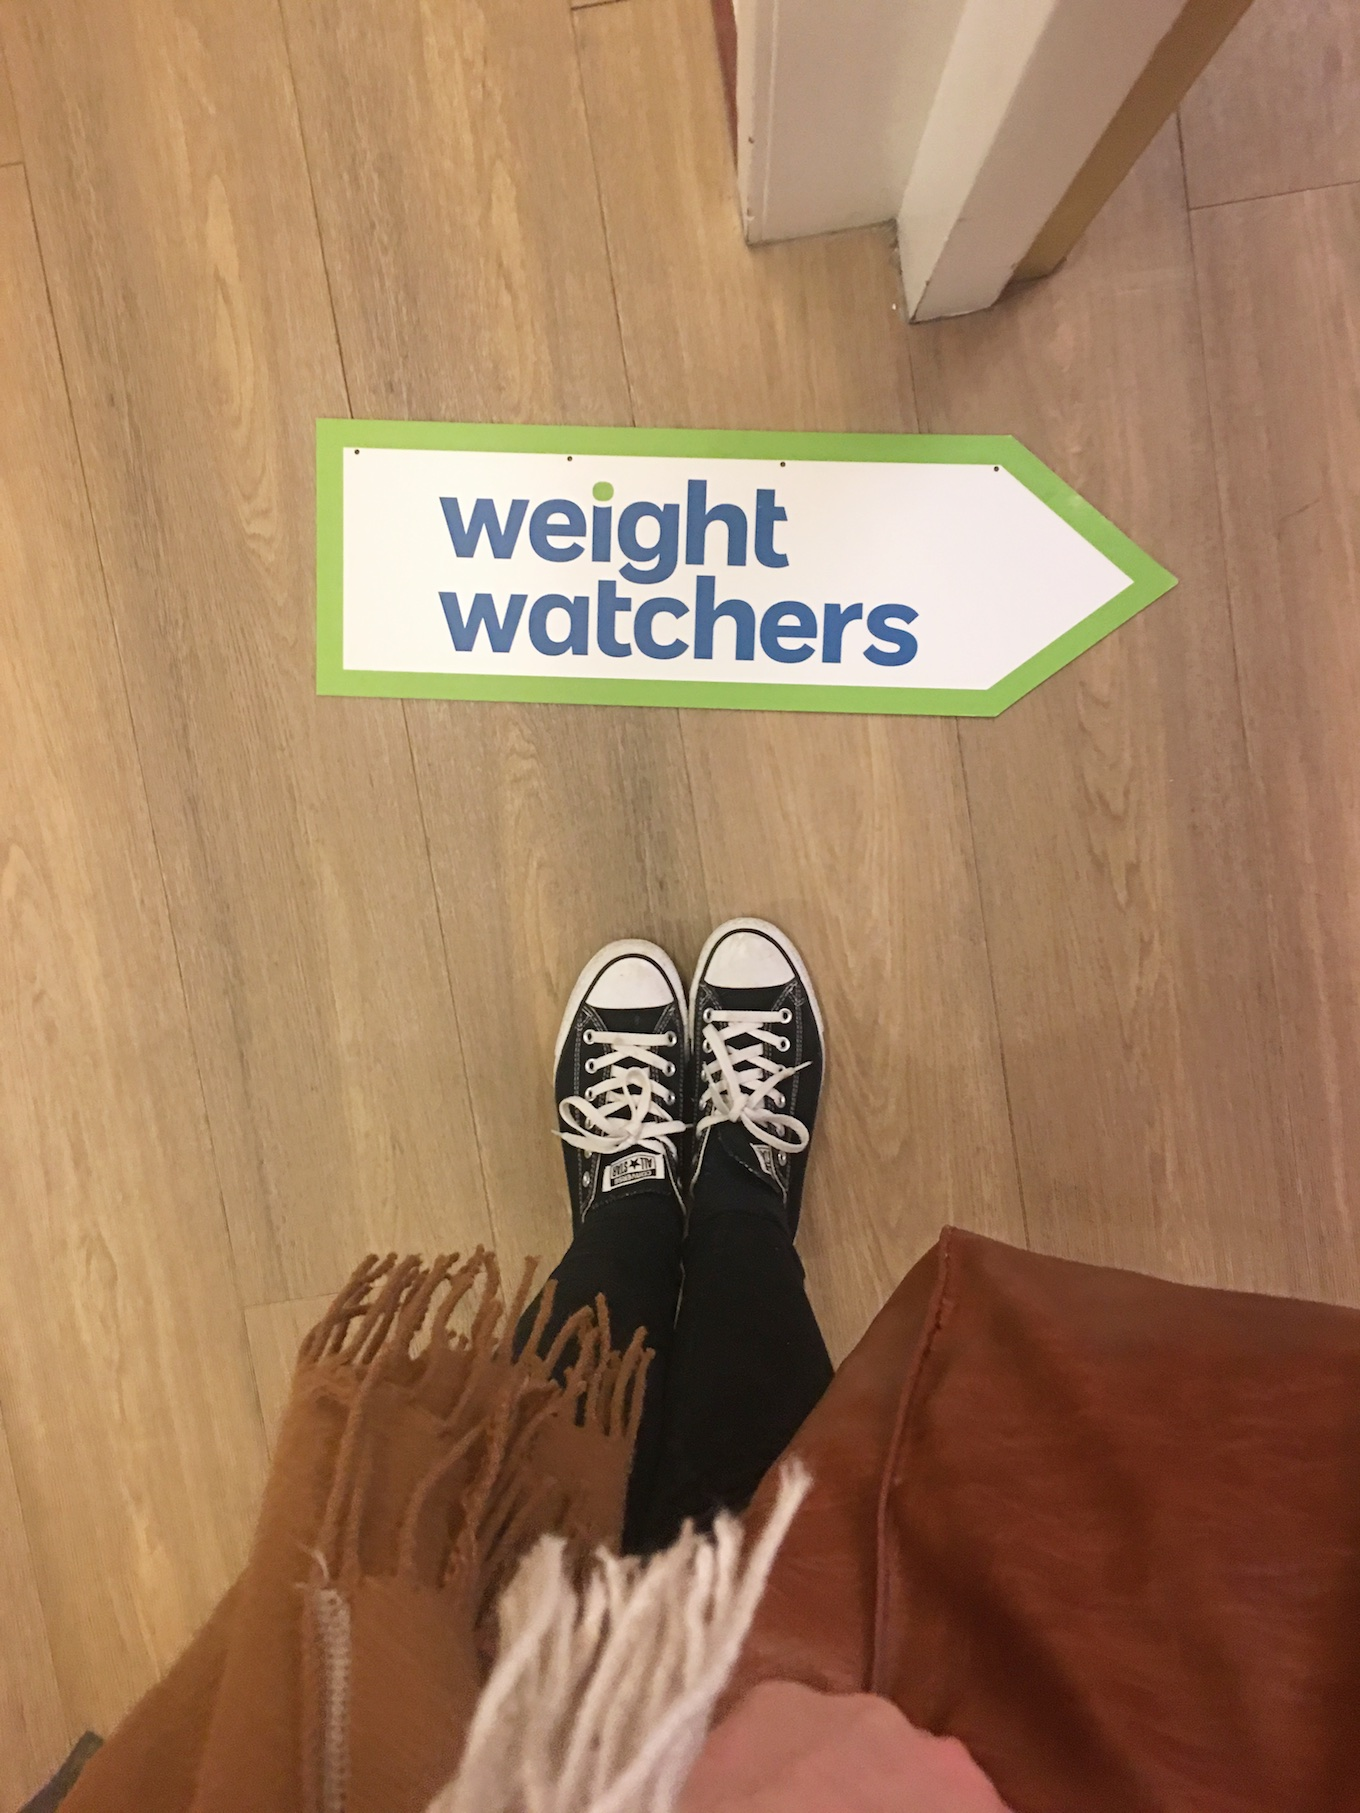 A cup of life - weight watchers